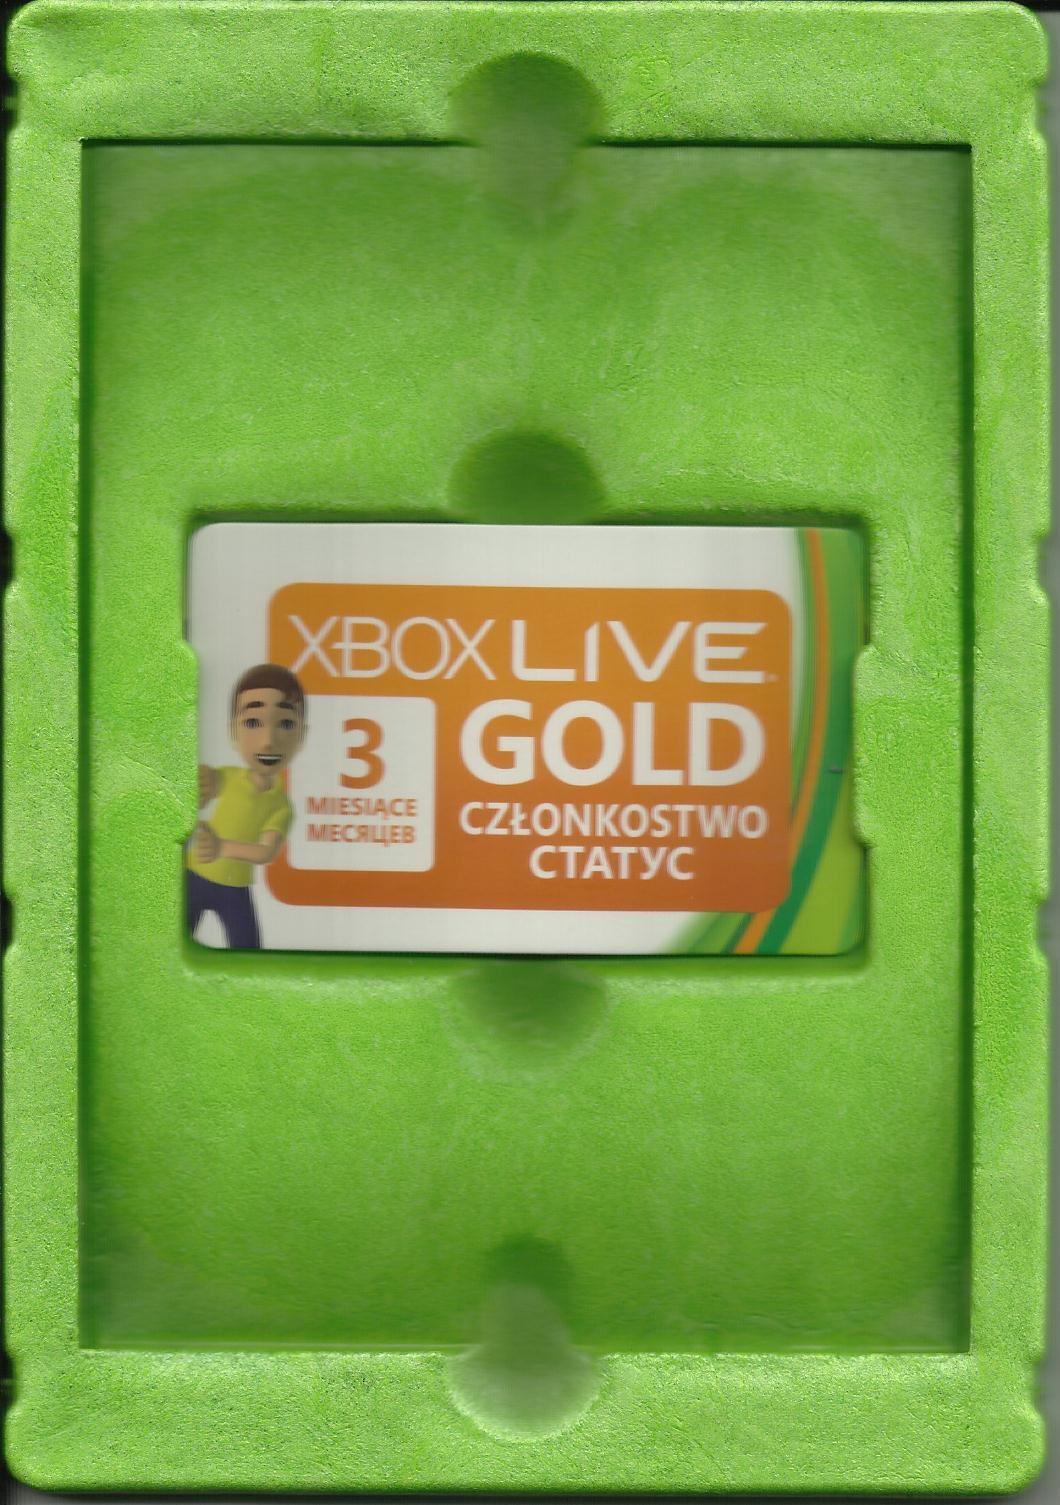 Buy Xbox Live Gold 3 Month Any Country RUSSIAN DISCOUNTS And Download